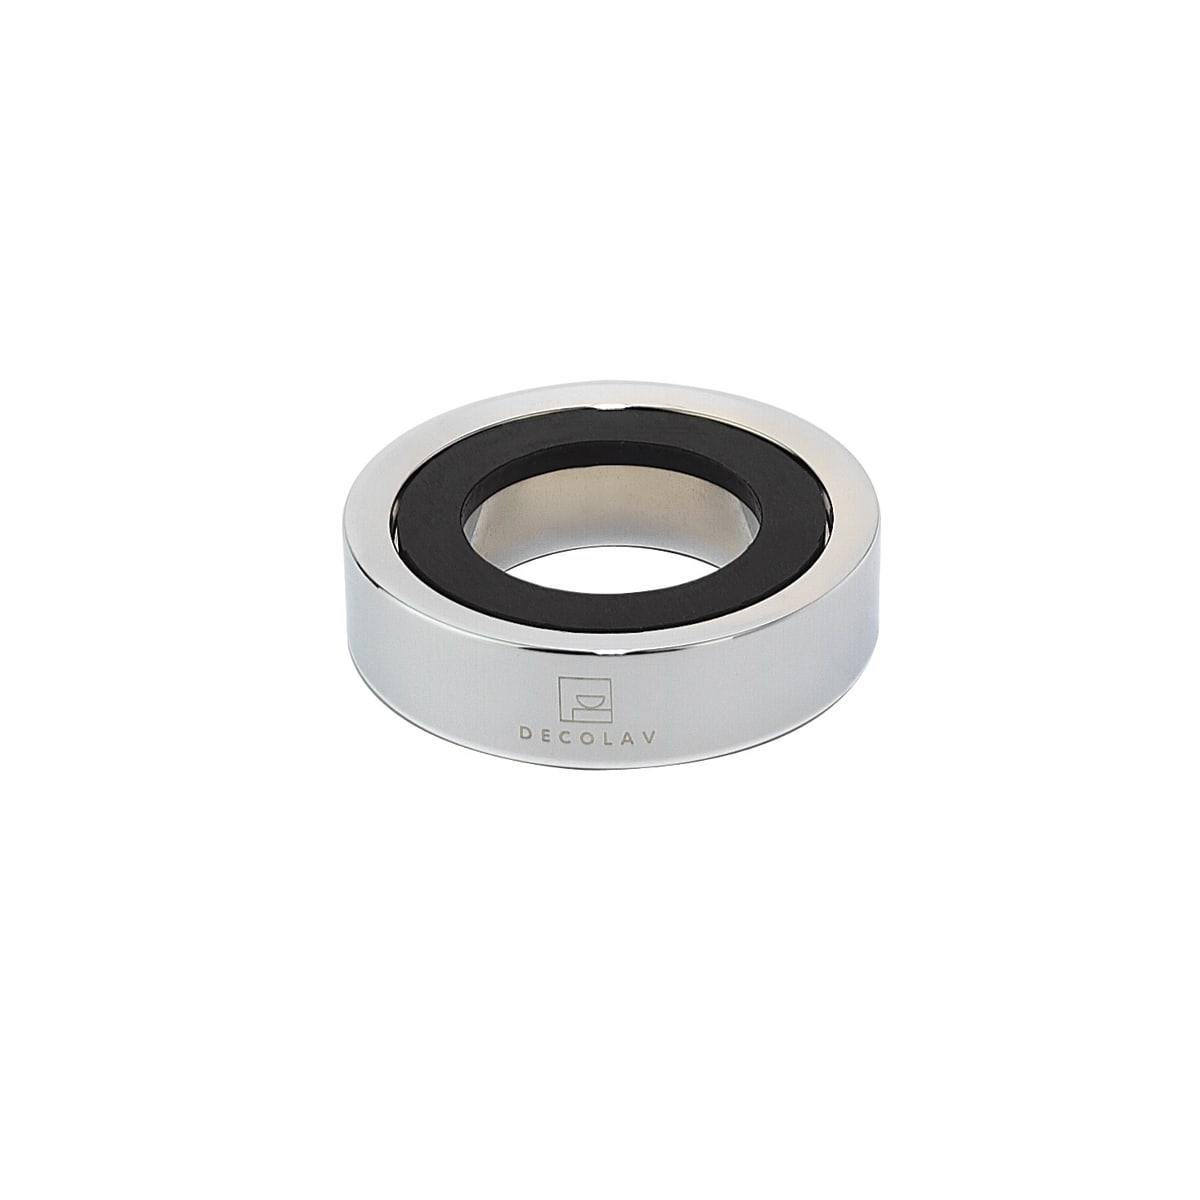 Decolav 9020-CP Mounting Ring Polished Chrome by Decolav